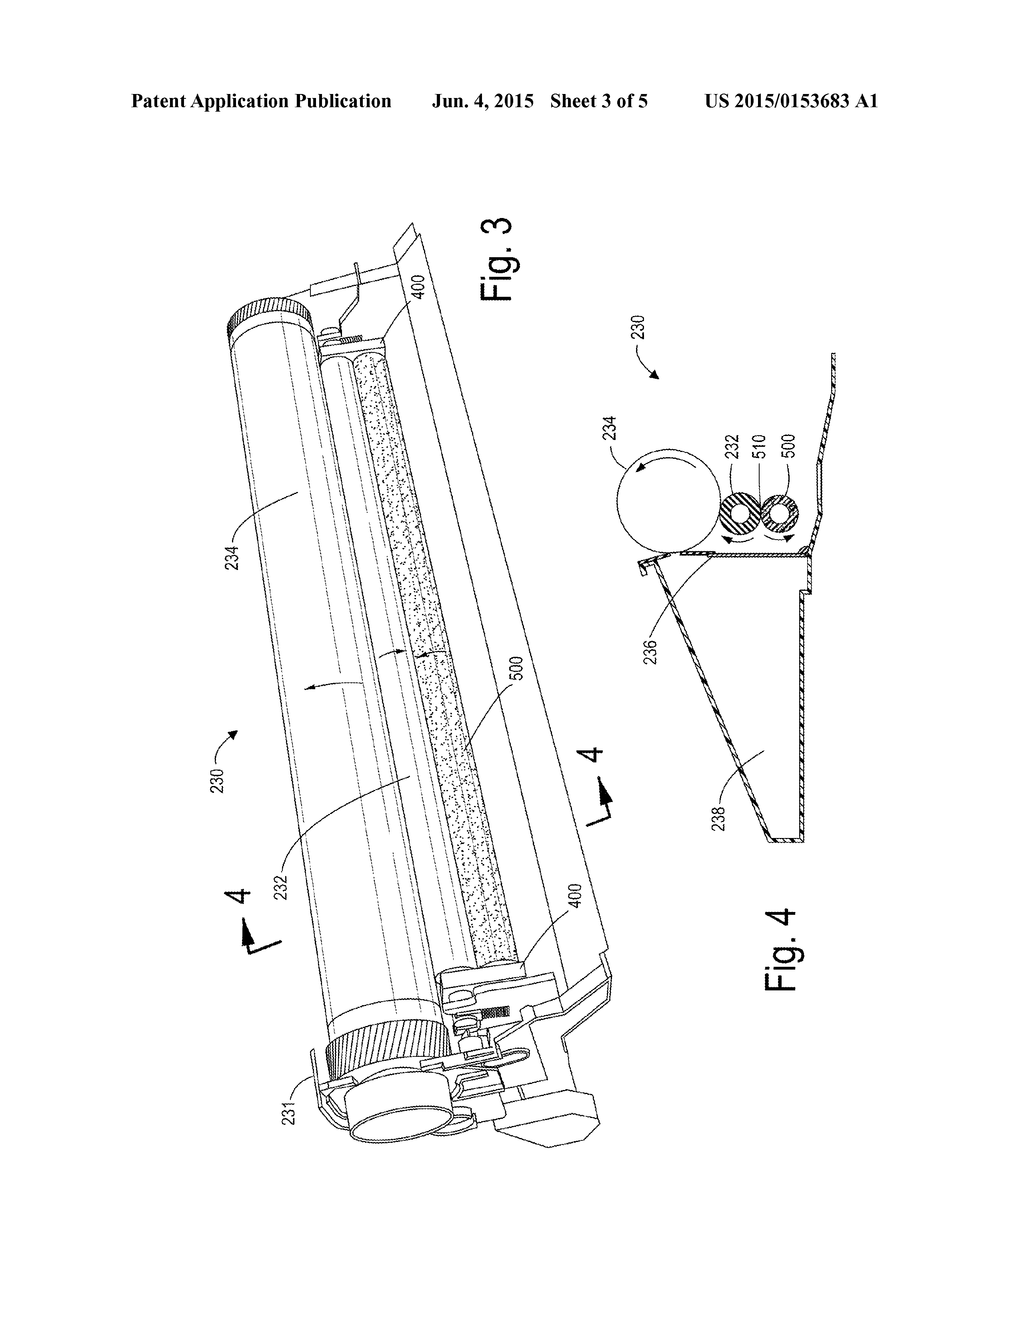 hight resolution of remanufactured toner cartridge with added cleaning roller for the primary charge roller and methods diagram schematic and image 04